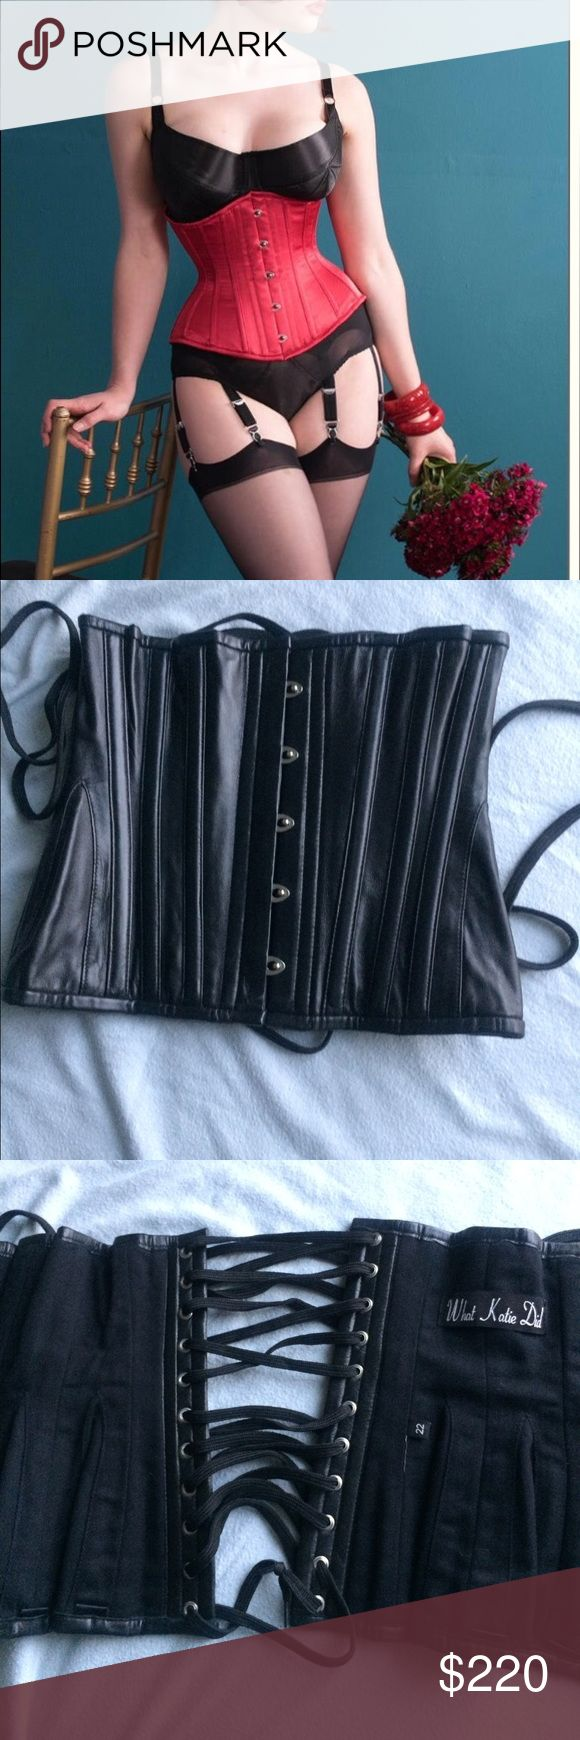 """Genuine BLACK LEATHER corset. Worn once! This is a gorgeous hand crafted corset from What Katie Did. Mint condition. The corset is black, not red. It is a size 22 based on WKD's measurements. I am about a size 6. Look at their website to understand how to size yourself. I believe this can fit a 30-26"""" waist but better to view the website or call them. This was a custom piece in black leather. Every woman should have one of these in their arsenal! Totally sexy. Im only giving this up because…"""